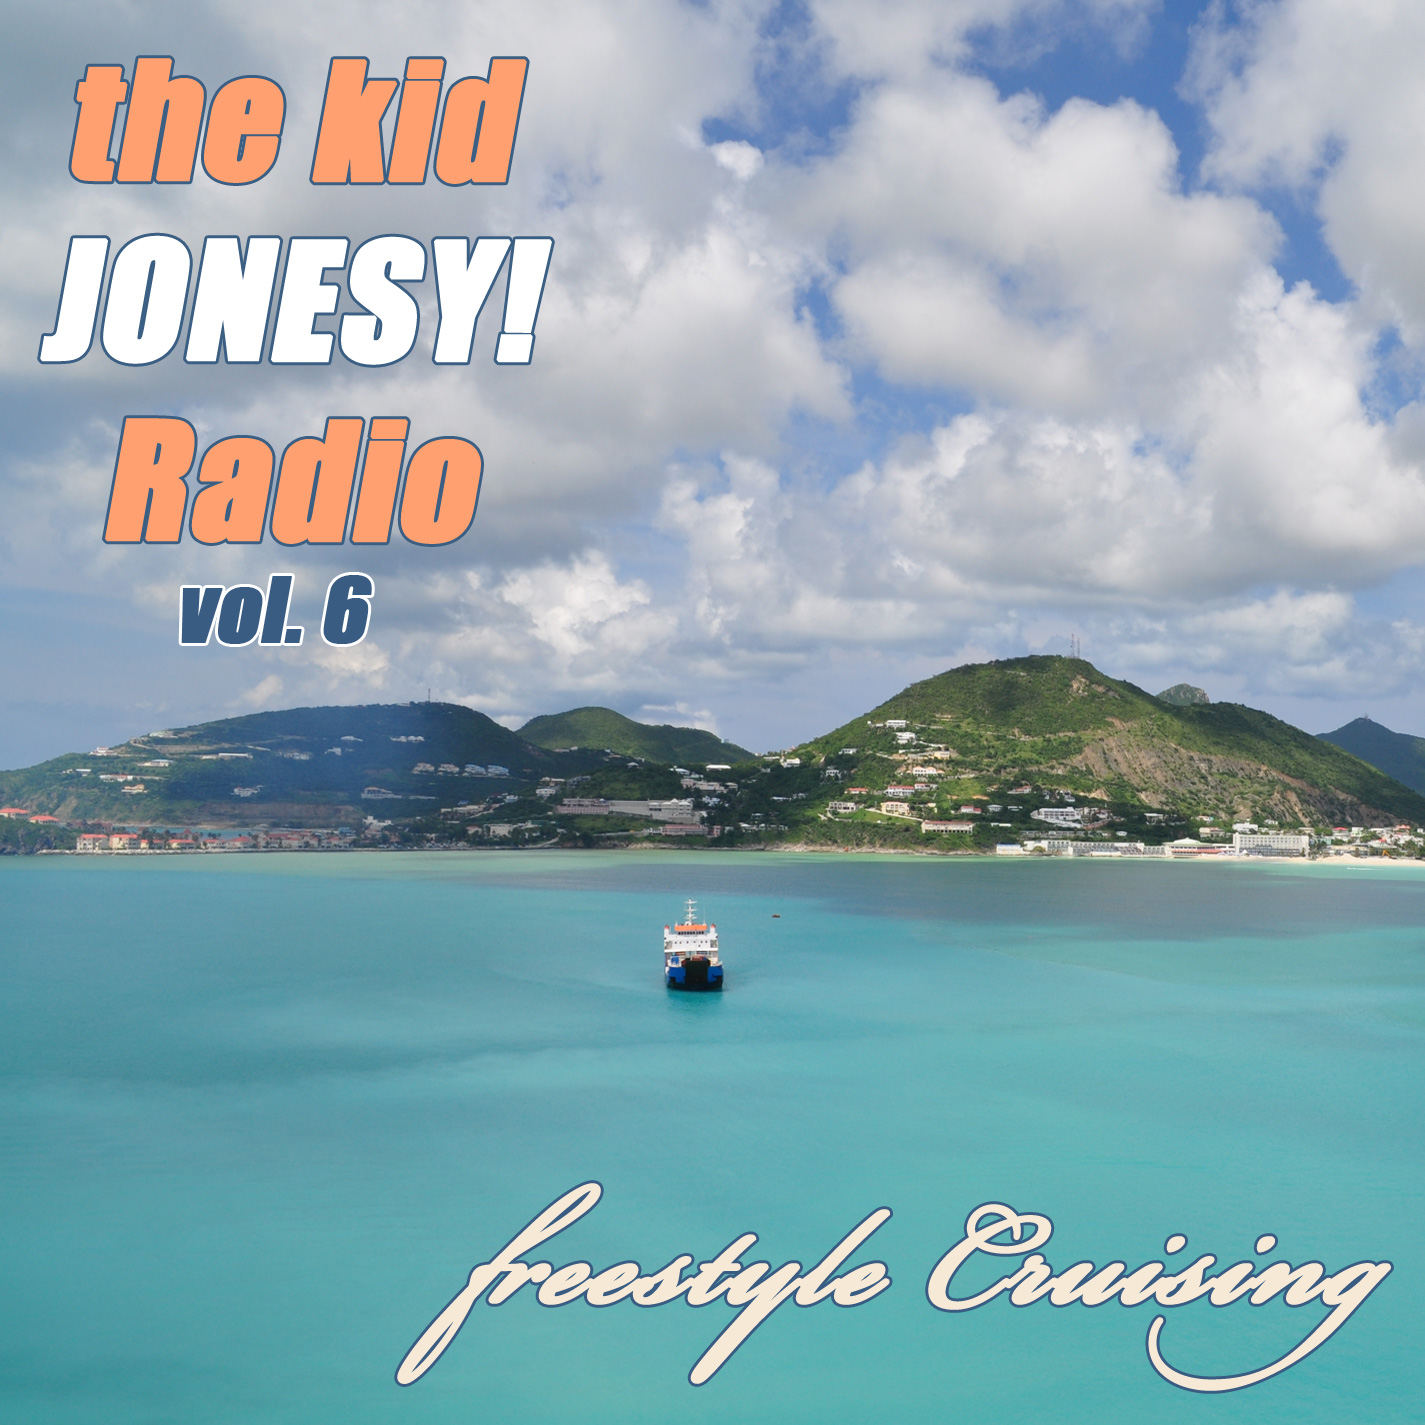 "Podcast Episode #6 - Subscribe TODAY!!!!   Click Here    Good Day People! DJ Jonesy here and welcome aboard the kid JONESY!'s EPIC Freestyle Cruise Session. A month at sea felt like a time warp that is tough to explain without having experienced it. Lucky for you guys, I have thrown my own twist on the world of Freestyle Cruising! So welcome aboard my Epic Adventure… dope music is being played on deck 15. Enjoy!! Features tracks from Joell Ortiz, Doc Daneeka, NERD, and much more!       Quantic & Nicodemus - Mi Swing Es Tropical   Notorious B.I.G. – Juicy (Pete Rock Remix)  Jadakiss & Red Café – Tape Rock (Remix)  Bugz In The Attic – Don't Stop The Music  Redinho – Lightning Strikes  Joell Ortiz – Murder  Diggy Simmons & Bei Maejor – Thinkin Bout U  Red Café – I Luv (Prod. By Pete Rock)  The Kid Daytona Feat. Aloe Blacc – NYA  Jim Jones – Like Gangstas  Nicki Minaj Feat. Drake – Moment 4 Life  Lauryn Hill – Lost Ones  Shirley Horn – Return To Paradise  Azymuth - Depois Do Carnival (Spiritual South Remix)  SOIL&""PIMP"" Sessions - Pop Korn (Doc Daneeka Remix)  Herman Kelly – Dance To The Drummer's Beat  N.E.R.D Feat. T.I. – Party People  Doc Daneeka – Kushday Soundboy  Bruno Mars Feat. Damian Marley – Liquor Store Blues  Kanye West & Jay-Z – The Joy (Prod. By Pete Rock)  J. Cole Feat. Drake – In The Morning  Lloyd Banks Feat. Eminem – Where I'm At  Sheek Louch Feat. Jeremih – After Party  Kanye West Feat. John Legend – Blame Game"